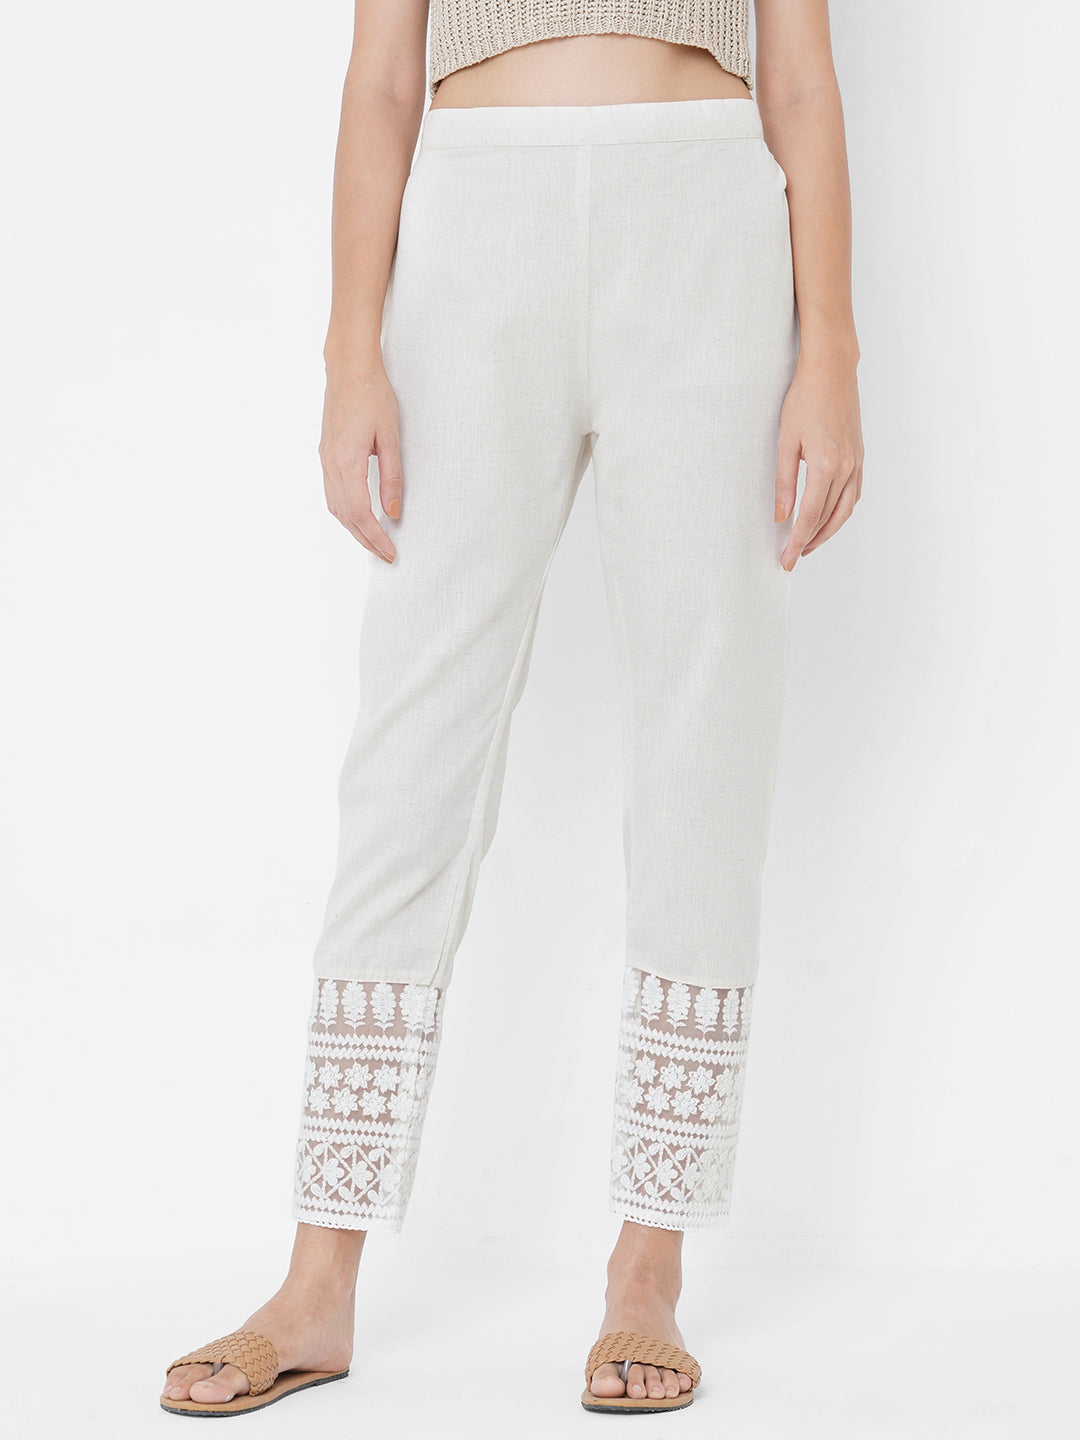 Floral Embroidered Solid Cotton Pant - Off White